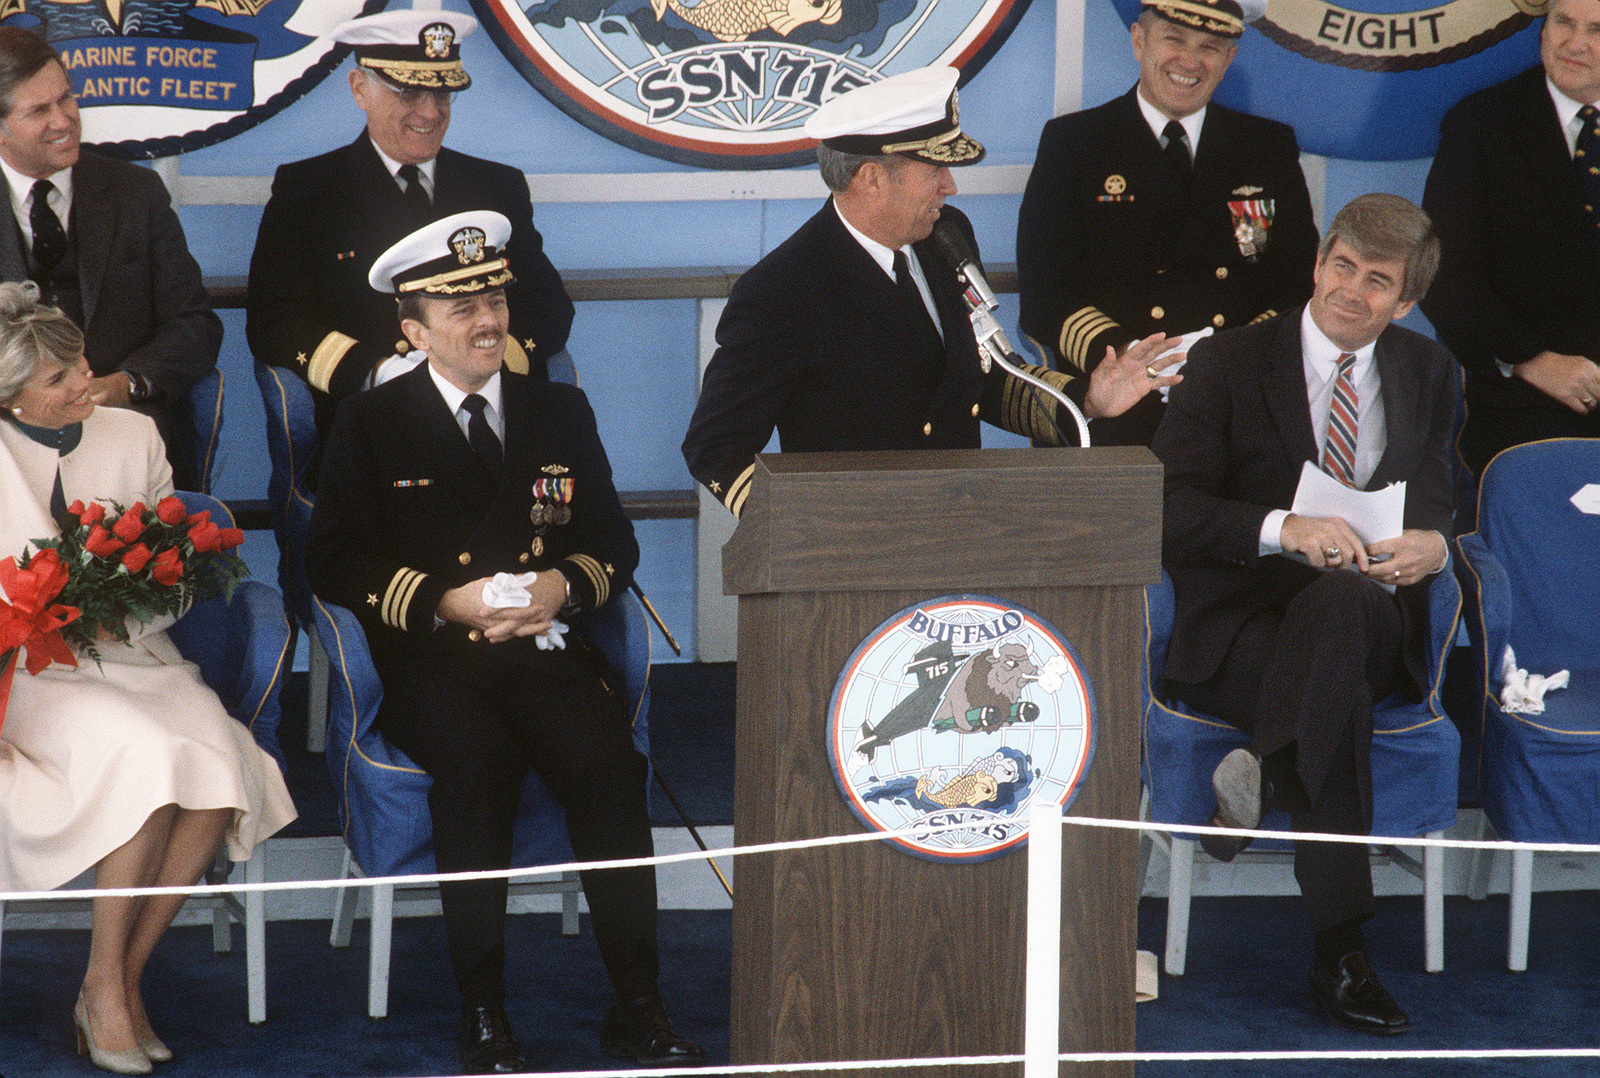 Admiral (ADM) Wesley L. McDonald, commander in chief, Atlantic and Atlantic Fleet, speaks during the commissioning ceremony for the nuclear-powered attack submarine USS BUFFALO (SSN 715). Representative Jack F. Kemp (Republican-New York) is seated on the right. On the left are Commander (CDR) G. Michael Hewitt, commanding officer of the BUFFALO, and Commodore M. MacKinnon, supervisor of Shipbuilding, Conversion and Repair, Newport News Shipbuilding